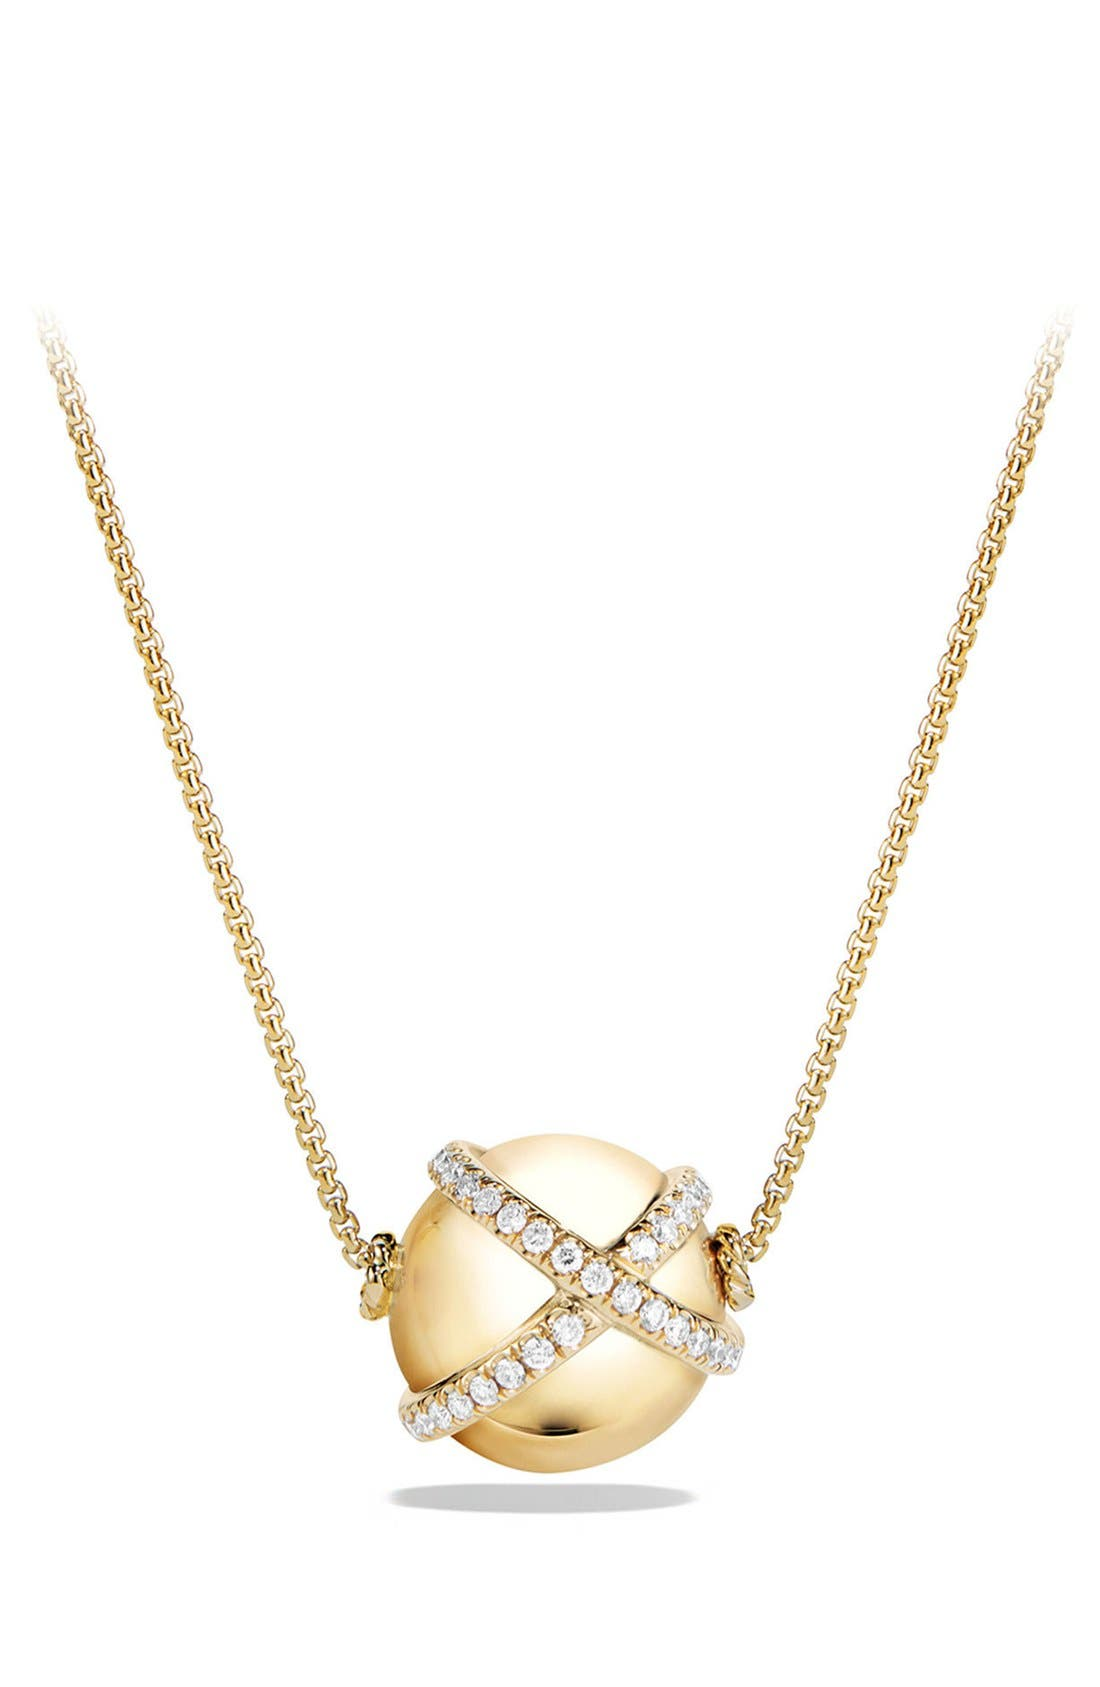 'Solari' Wrap Pendant Necklace with Pavé Diamonds in 18k Gold,                         Main,                         color, Yellow Gold